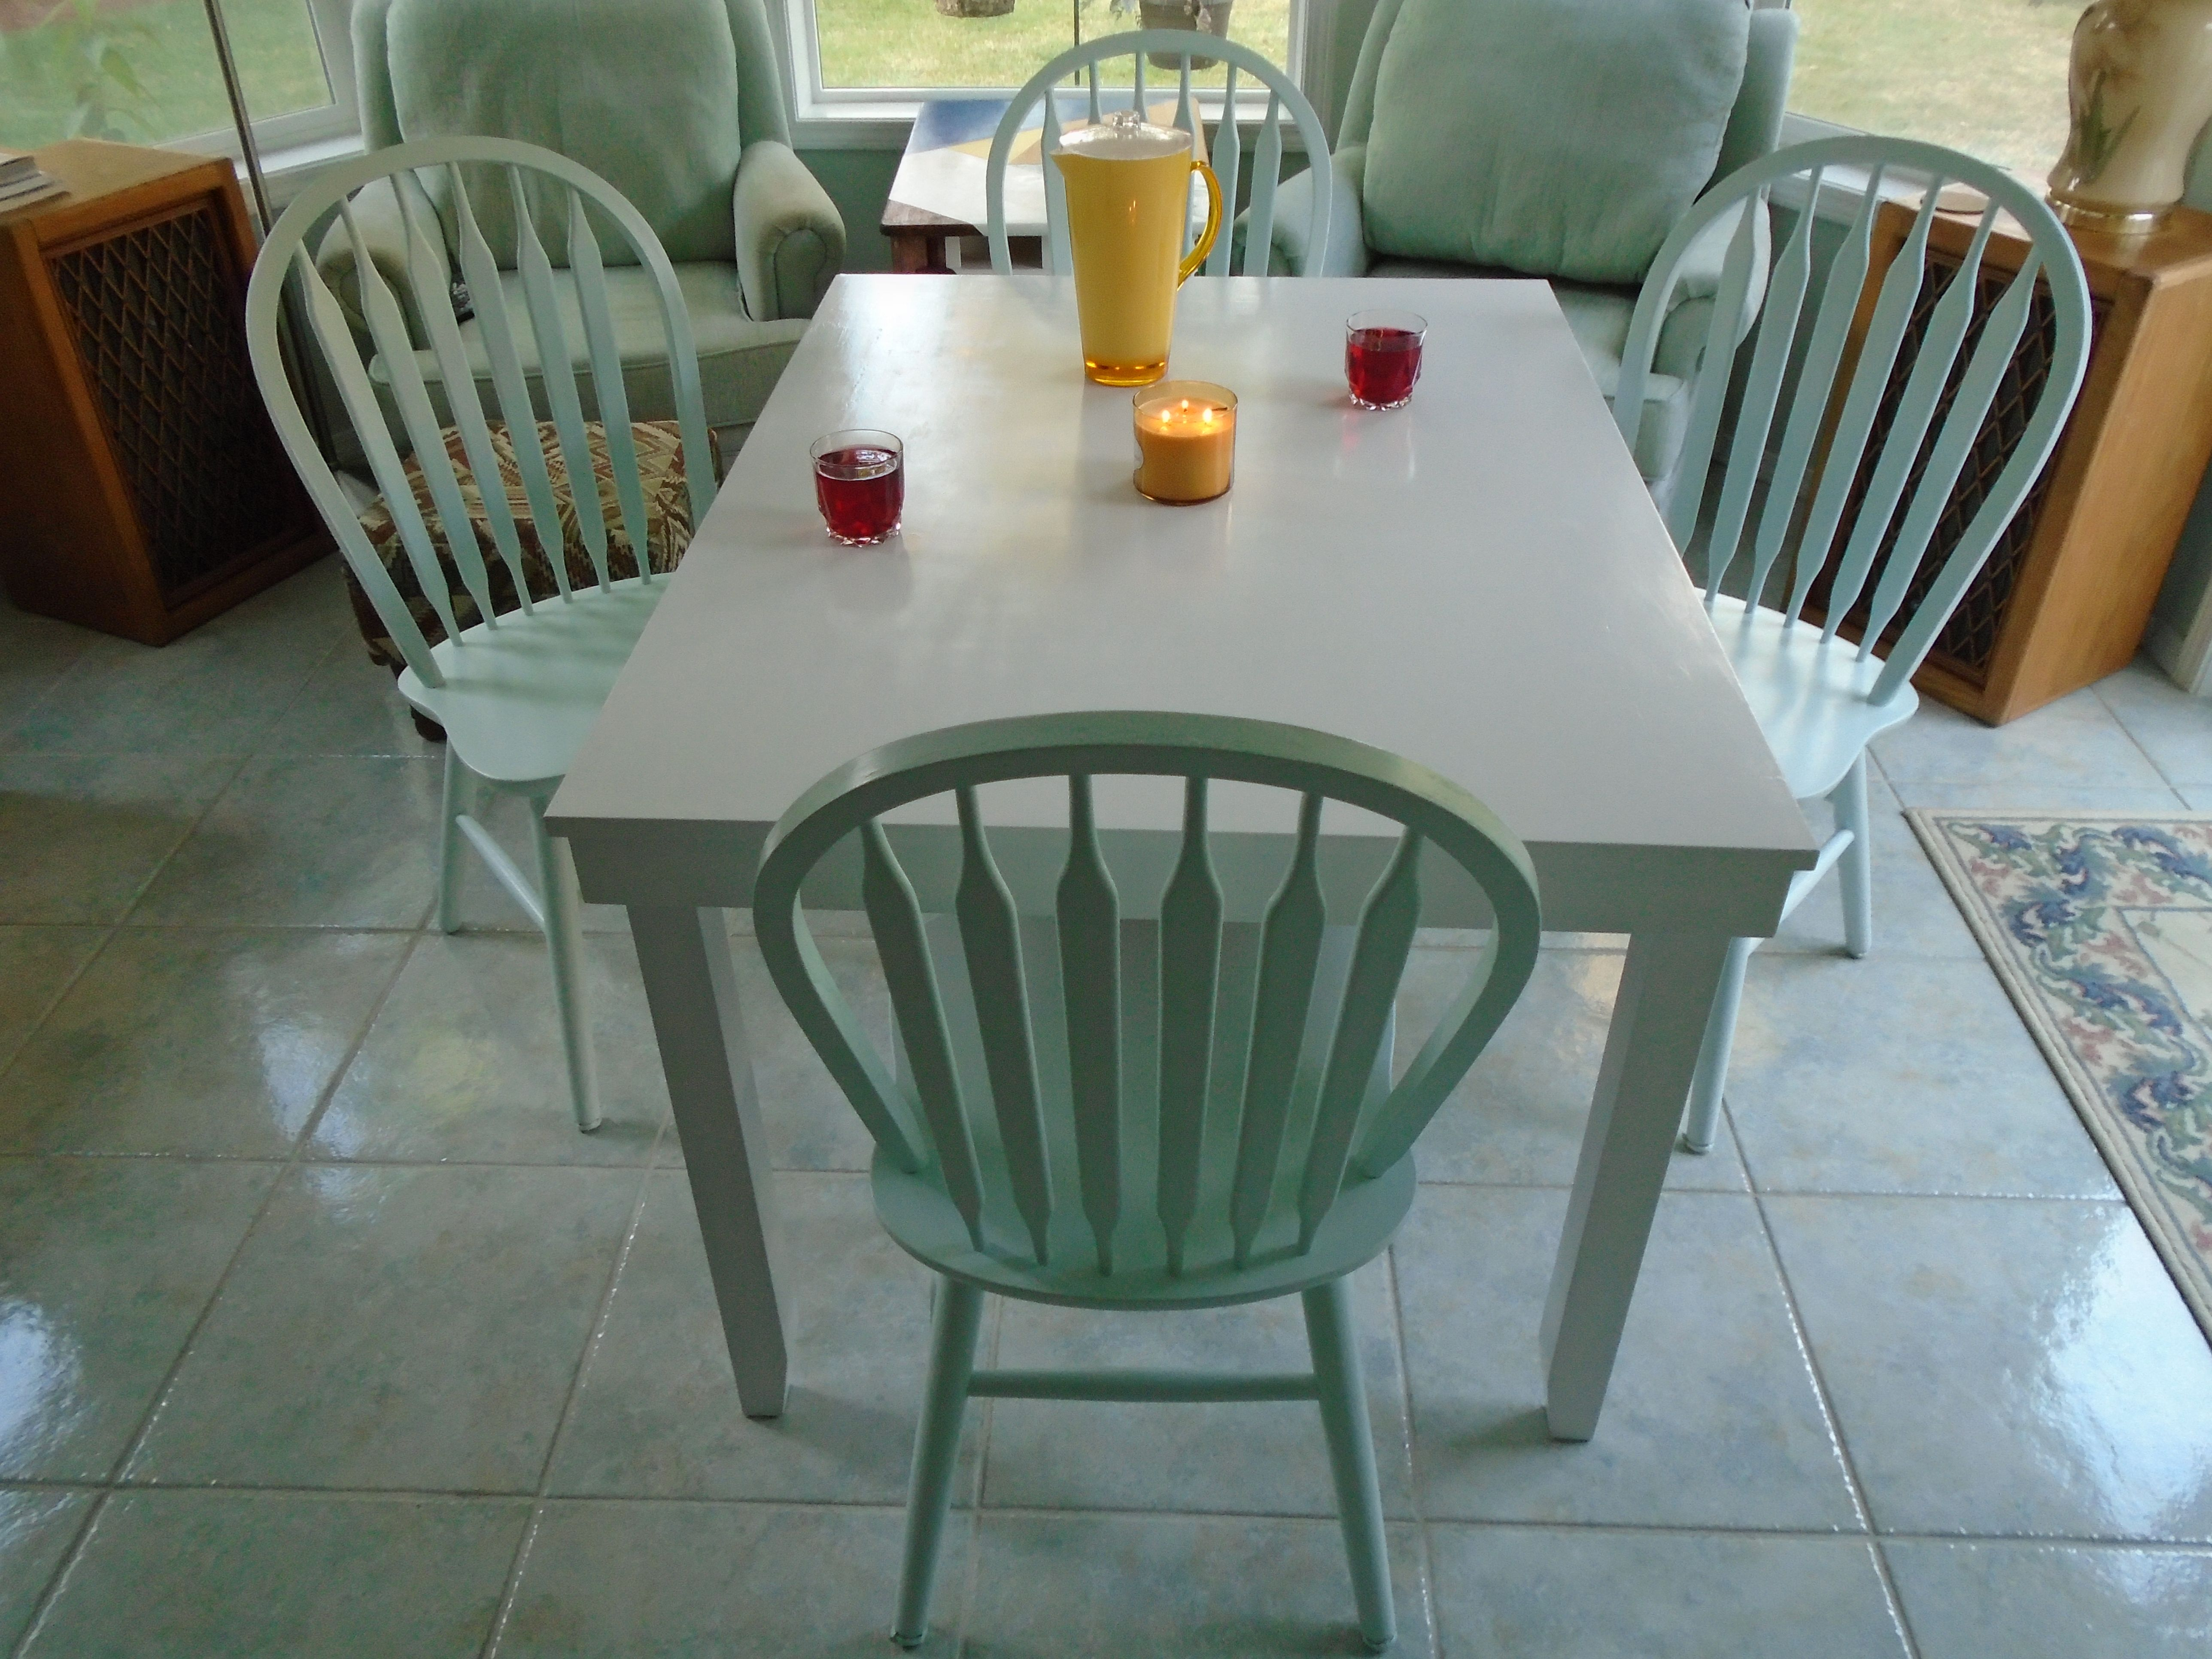 White Table With Mint Green Chairs Refurbished Furniture Green Chair Dining Room Table Mint green dining chairs